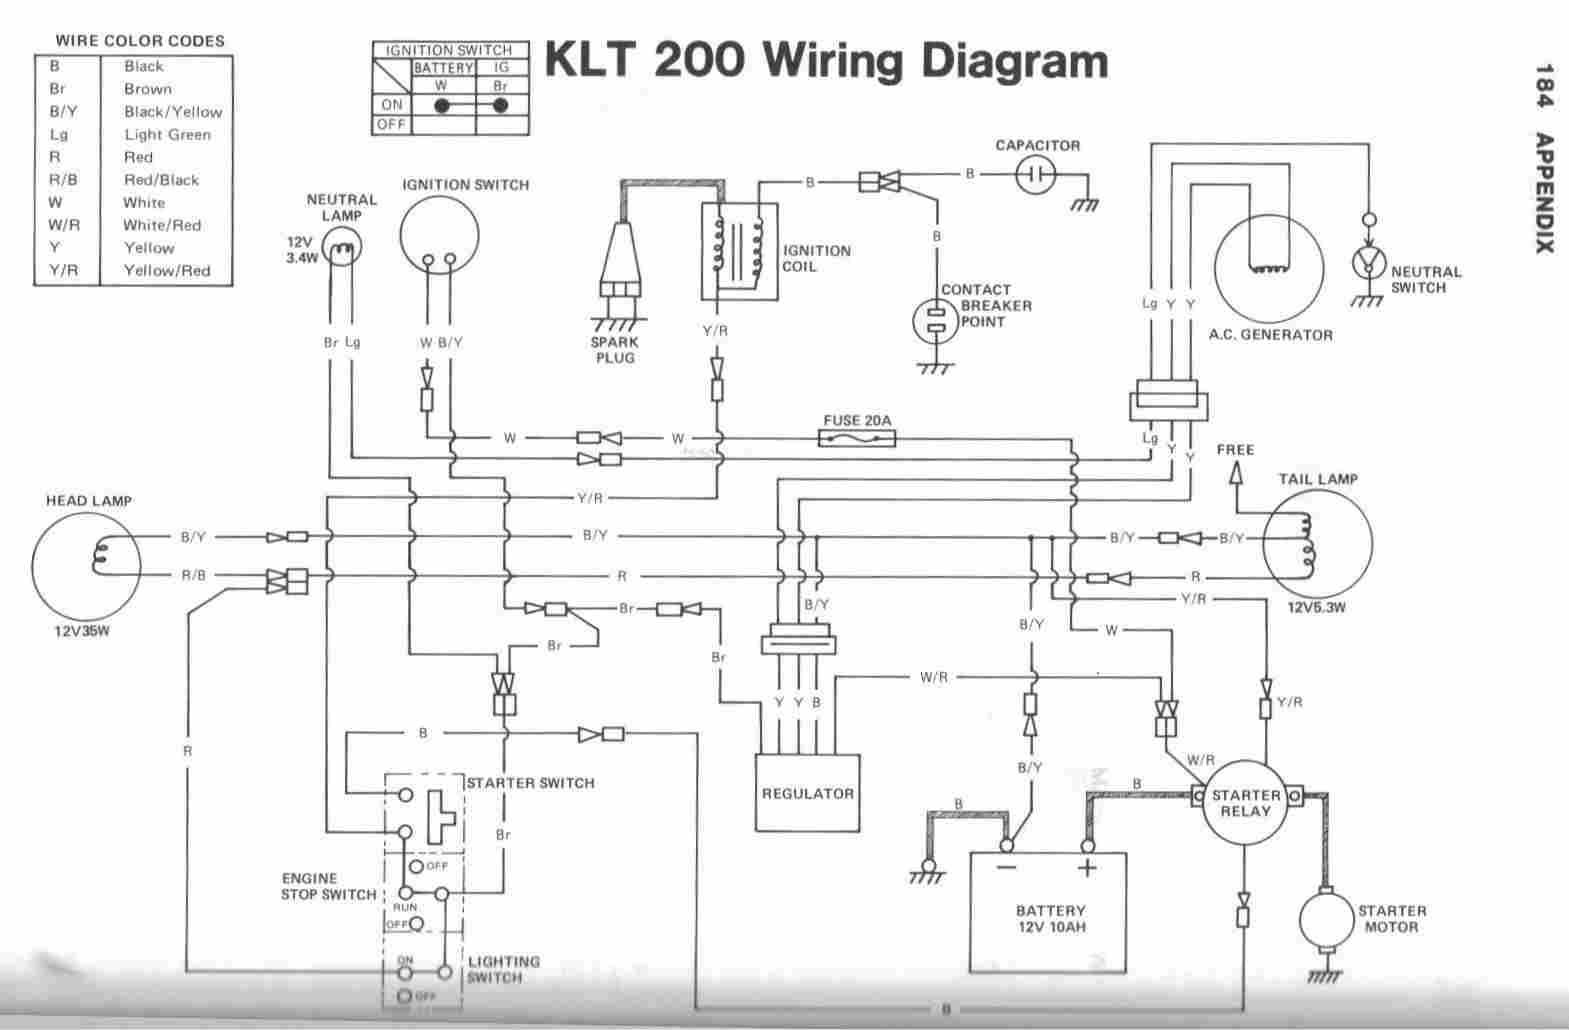 2869034594ce054a636782e5c44b61b4 auto gate wiring diagram pdf tahoe seat wiring \u2022 free wiring electrical control wiring diagram pdf at readyjetset.co